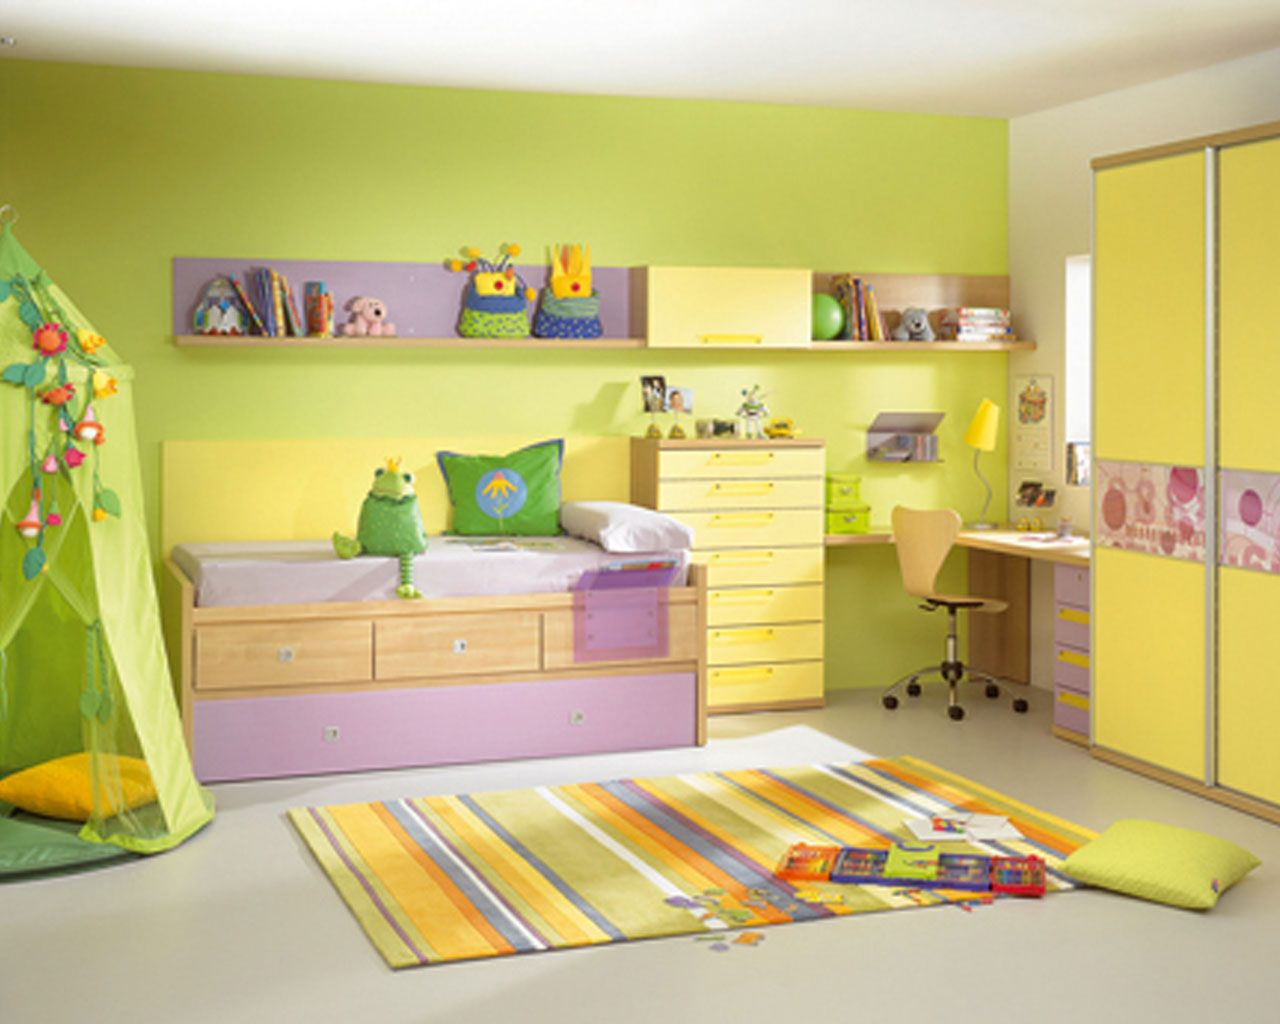 Lime green and white themed kids room paint ideas with - Pareti dipinte per camerette ...